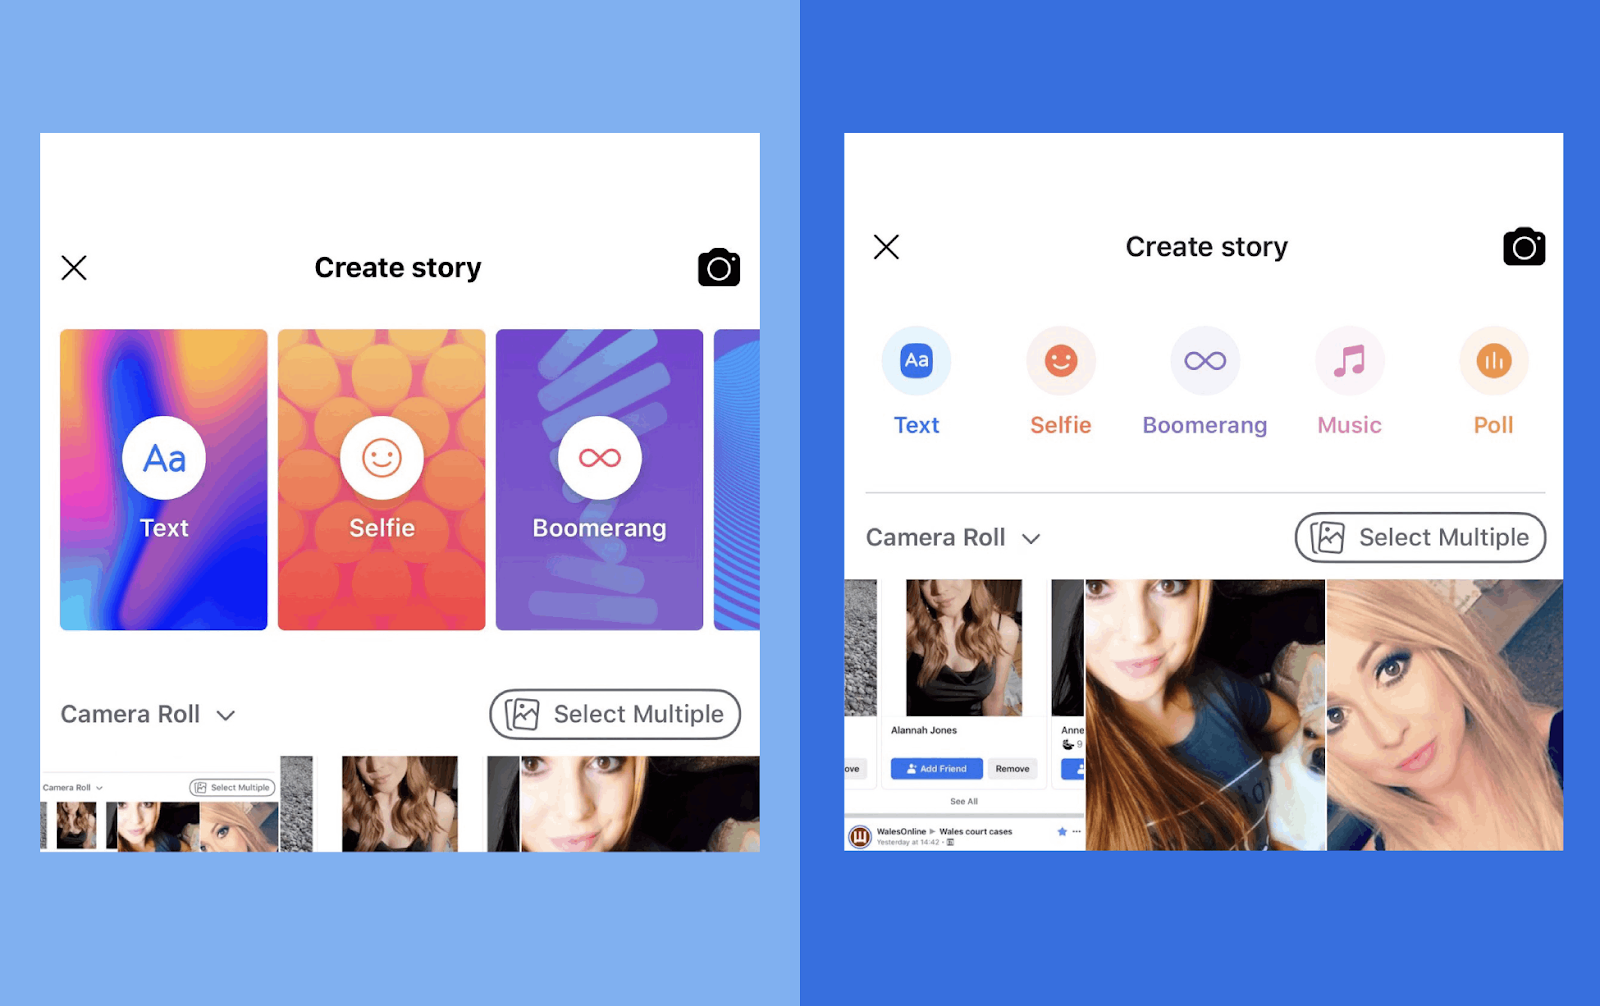 Facebook is testing a new UI for its story creation mode